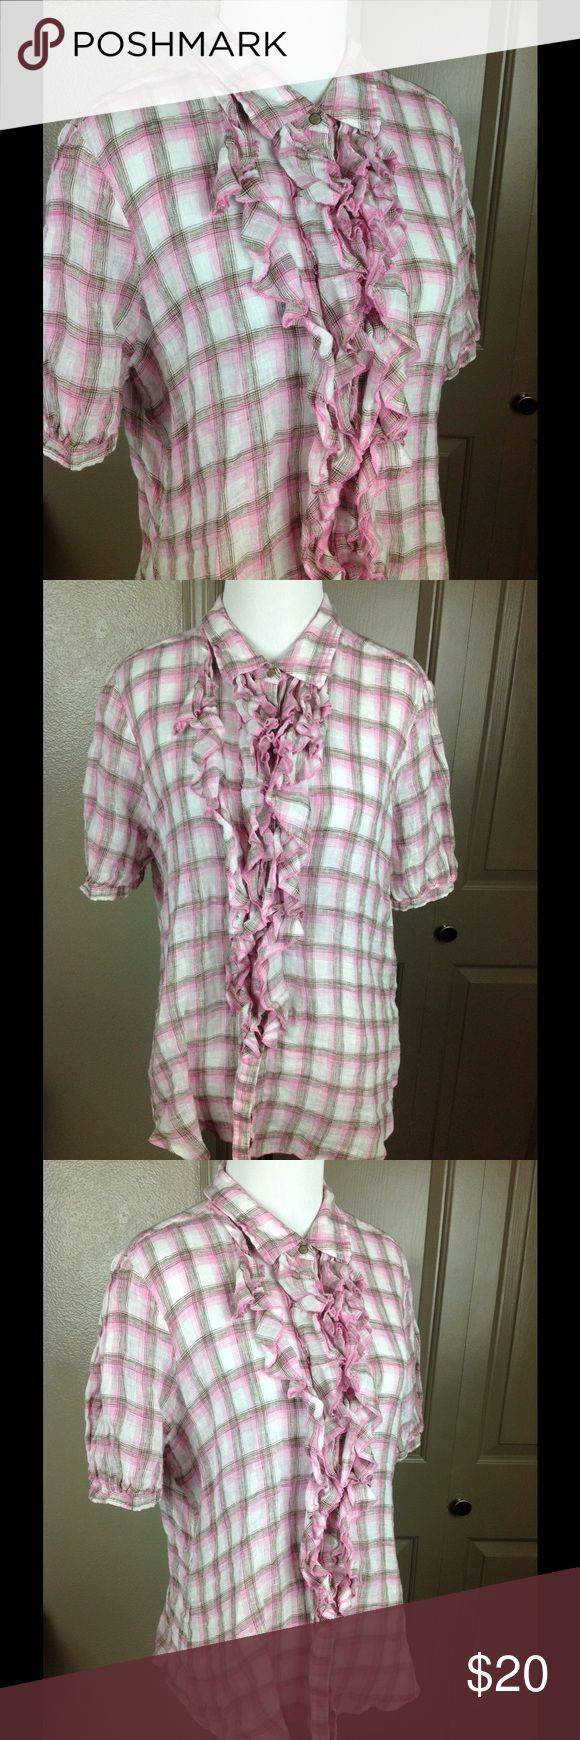 Ryan Michael Top Button Up Linen XL Western Plaid Great condition pink/white/brown plain 100% linen abalone full button up ruffled center 25 inch length 22 inch across bust Ryan Michael Tops Blouses